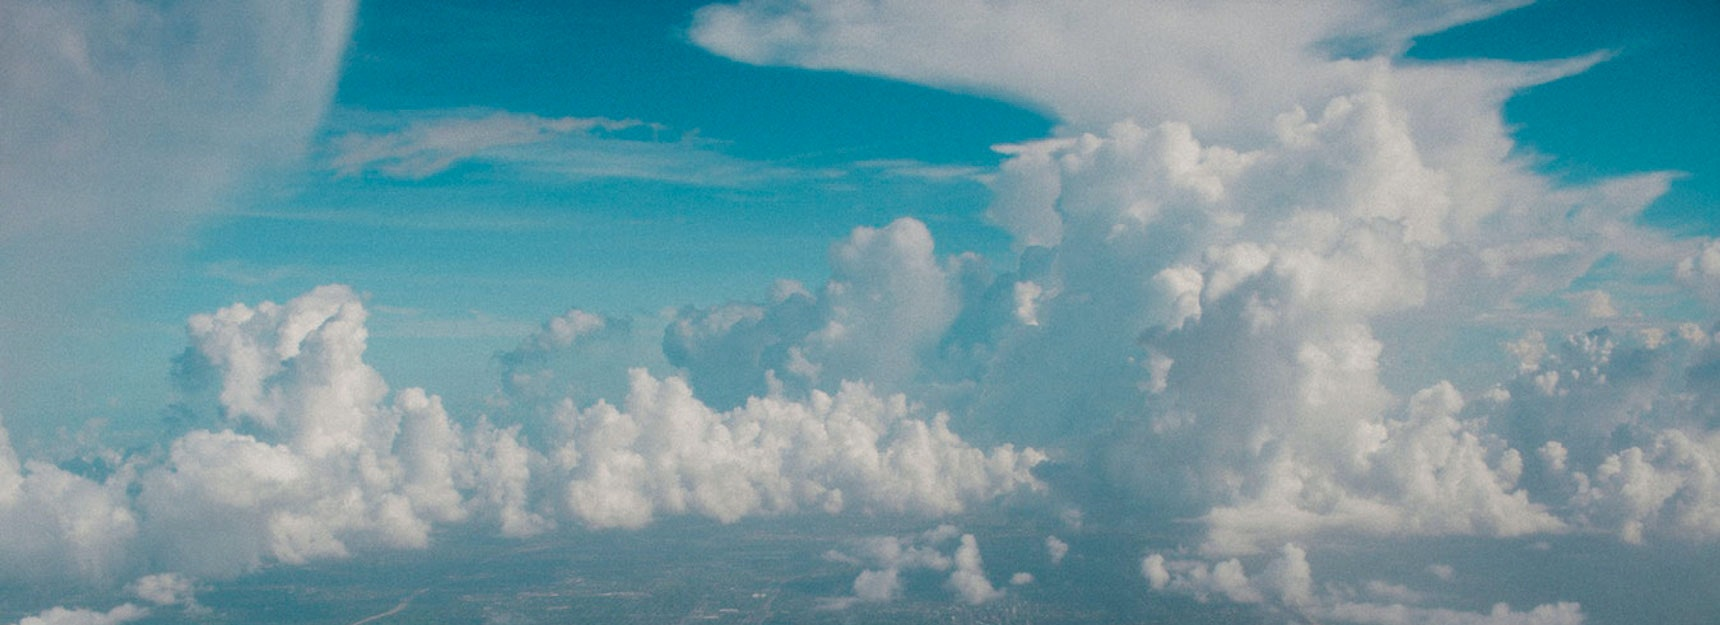 cloudy blue background banner image